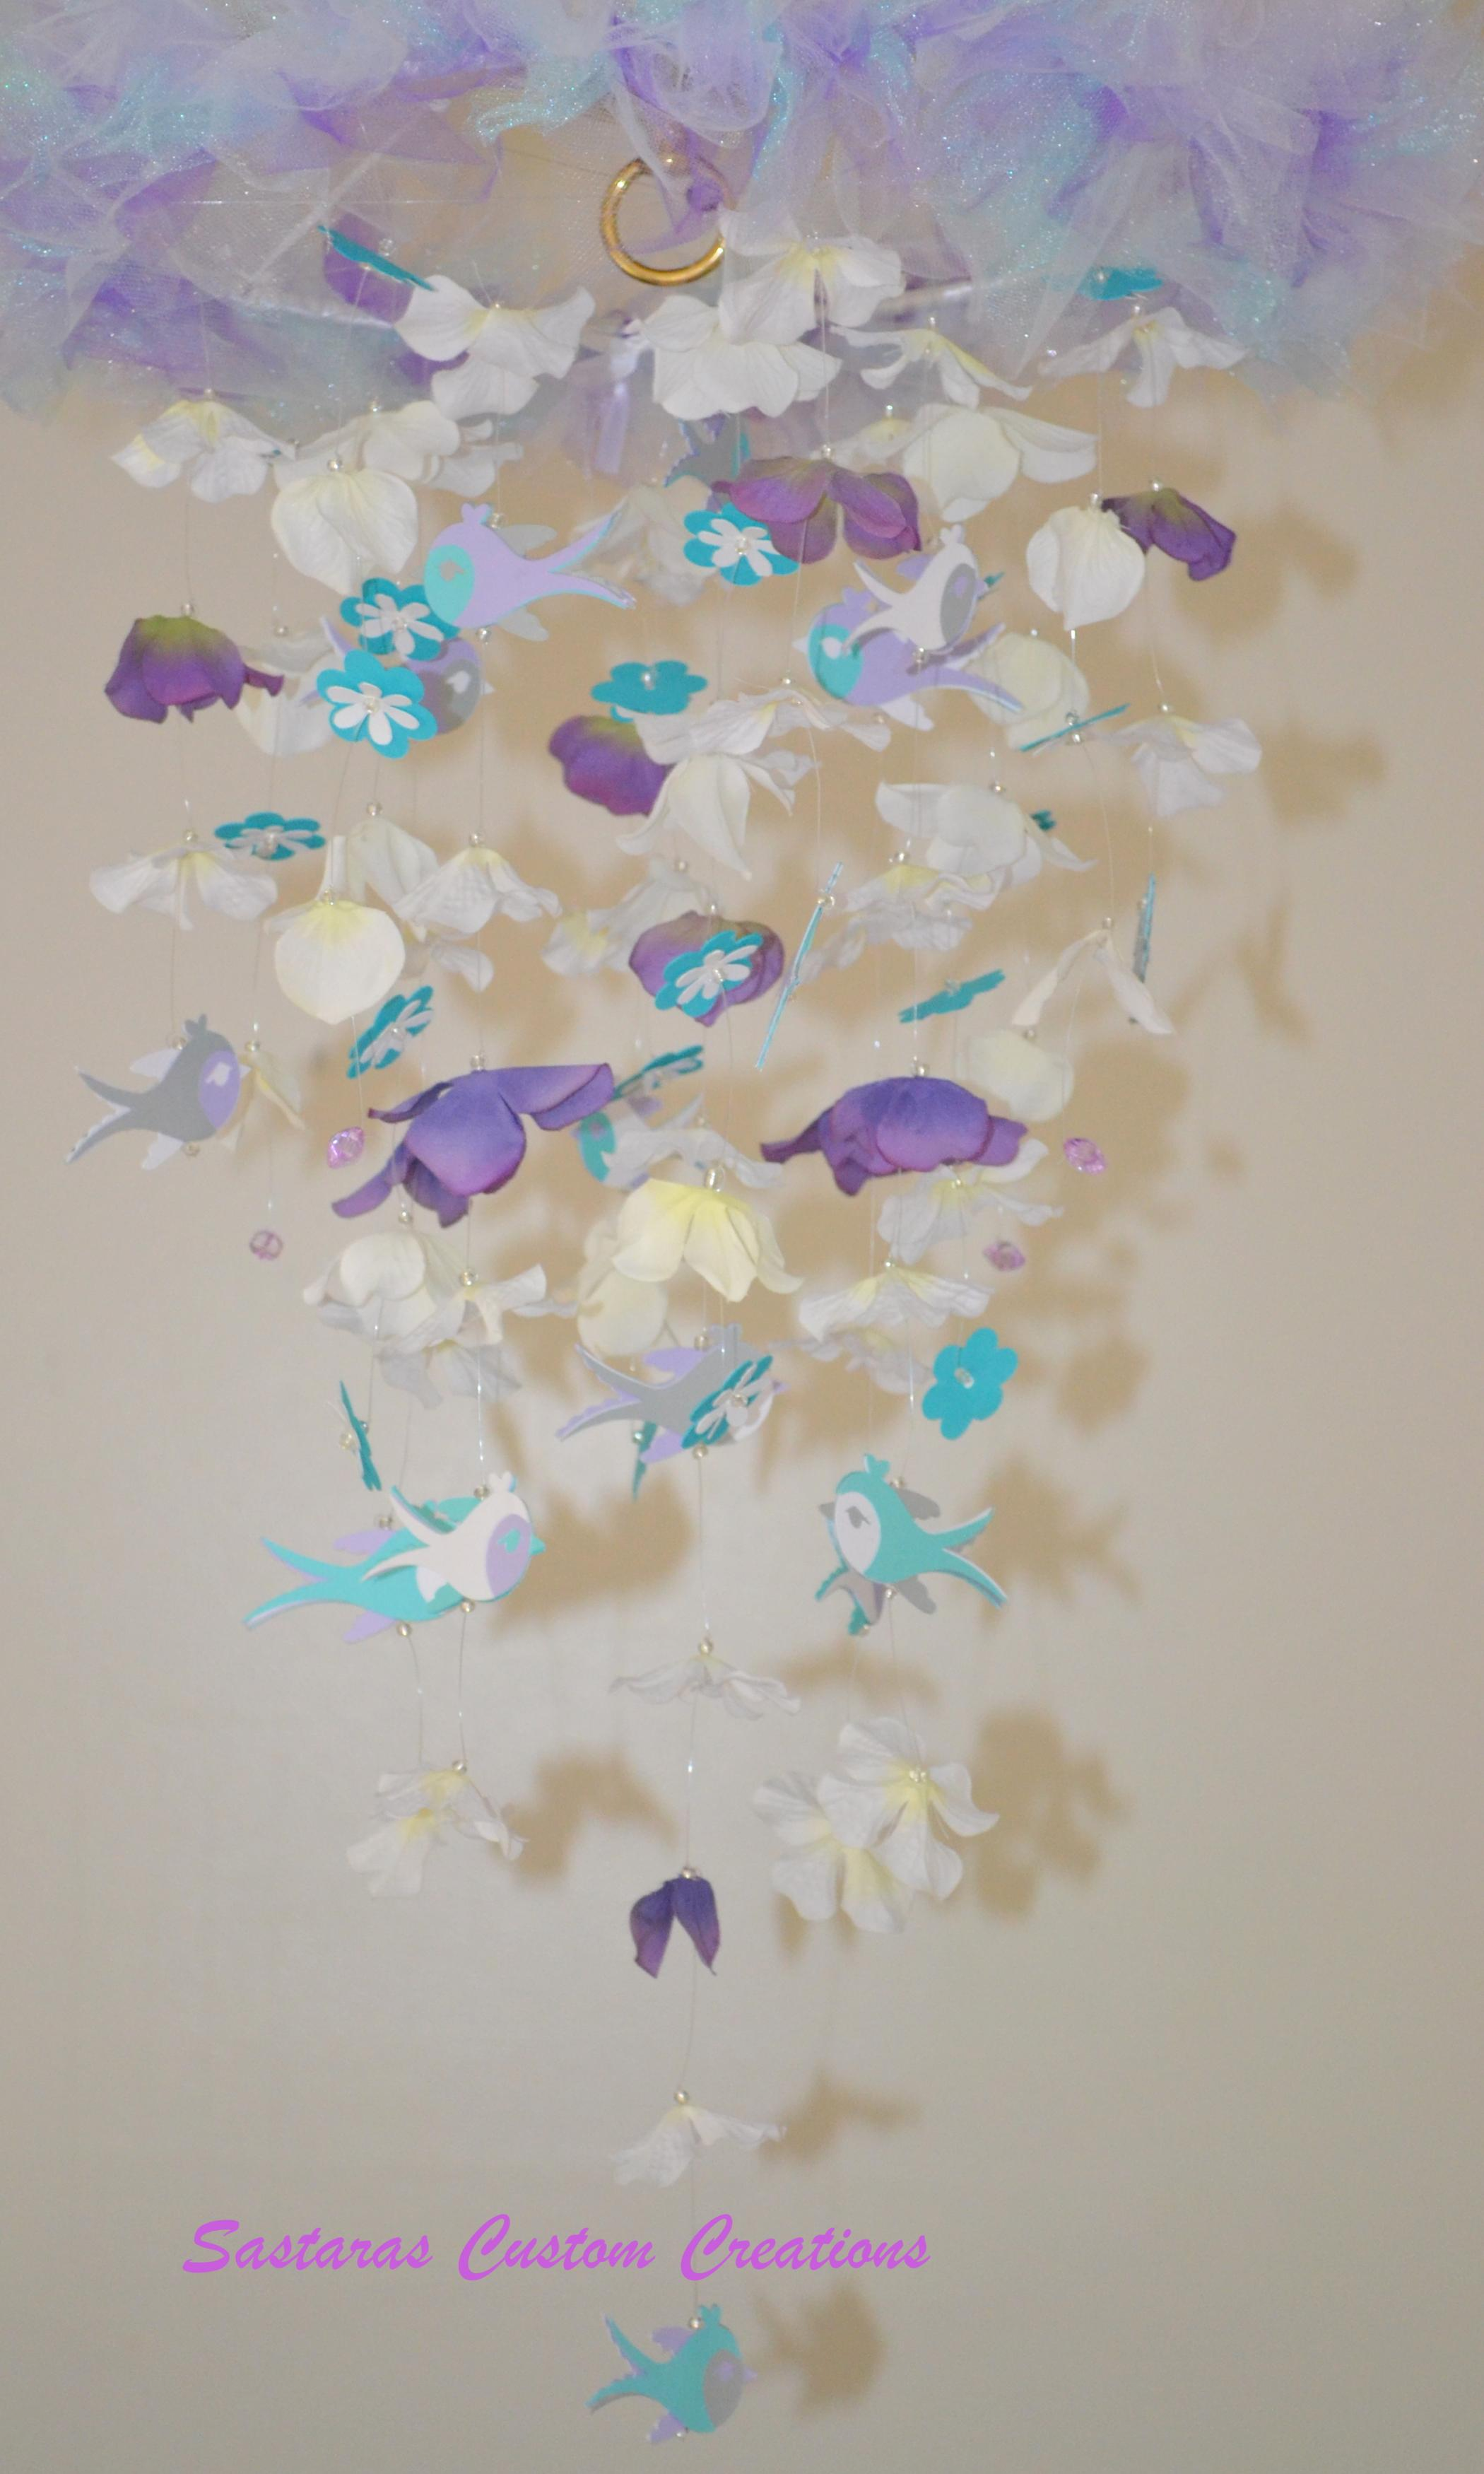 teal white gray purple nursery decor baby shower gift chandelier